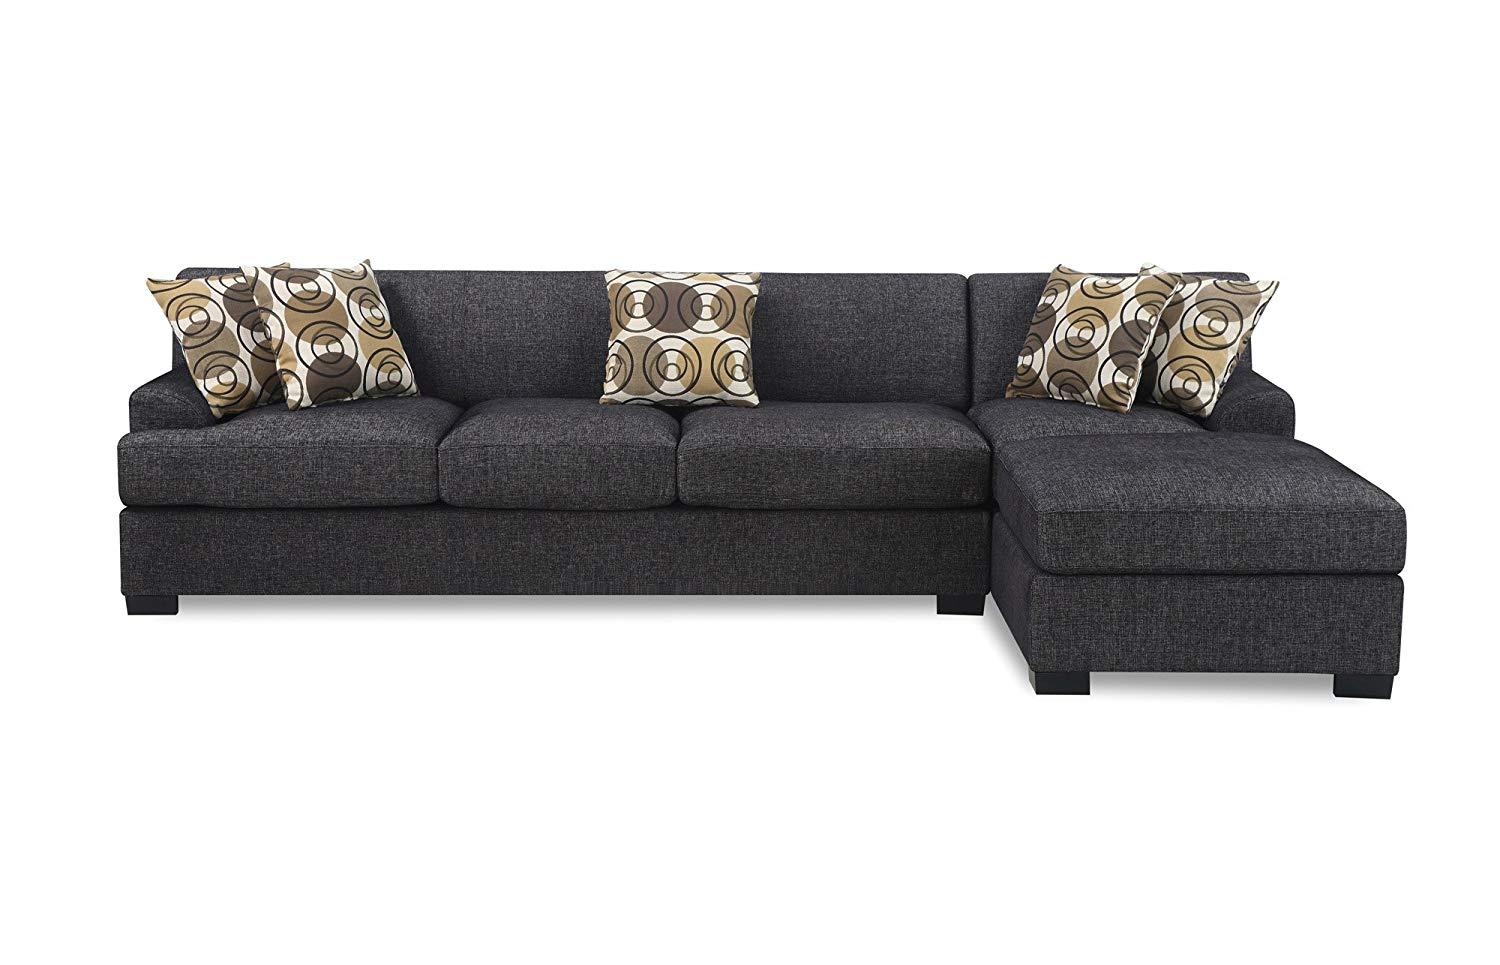 chaise couch amazon.com: bobkona benford 2-piece chaise loveseat sectional sofa  collection with faux linen, TJPCCMM